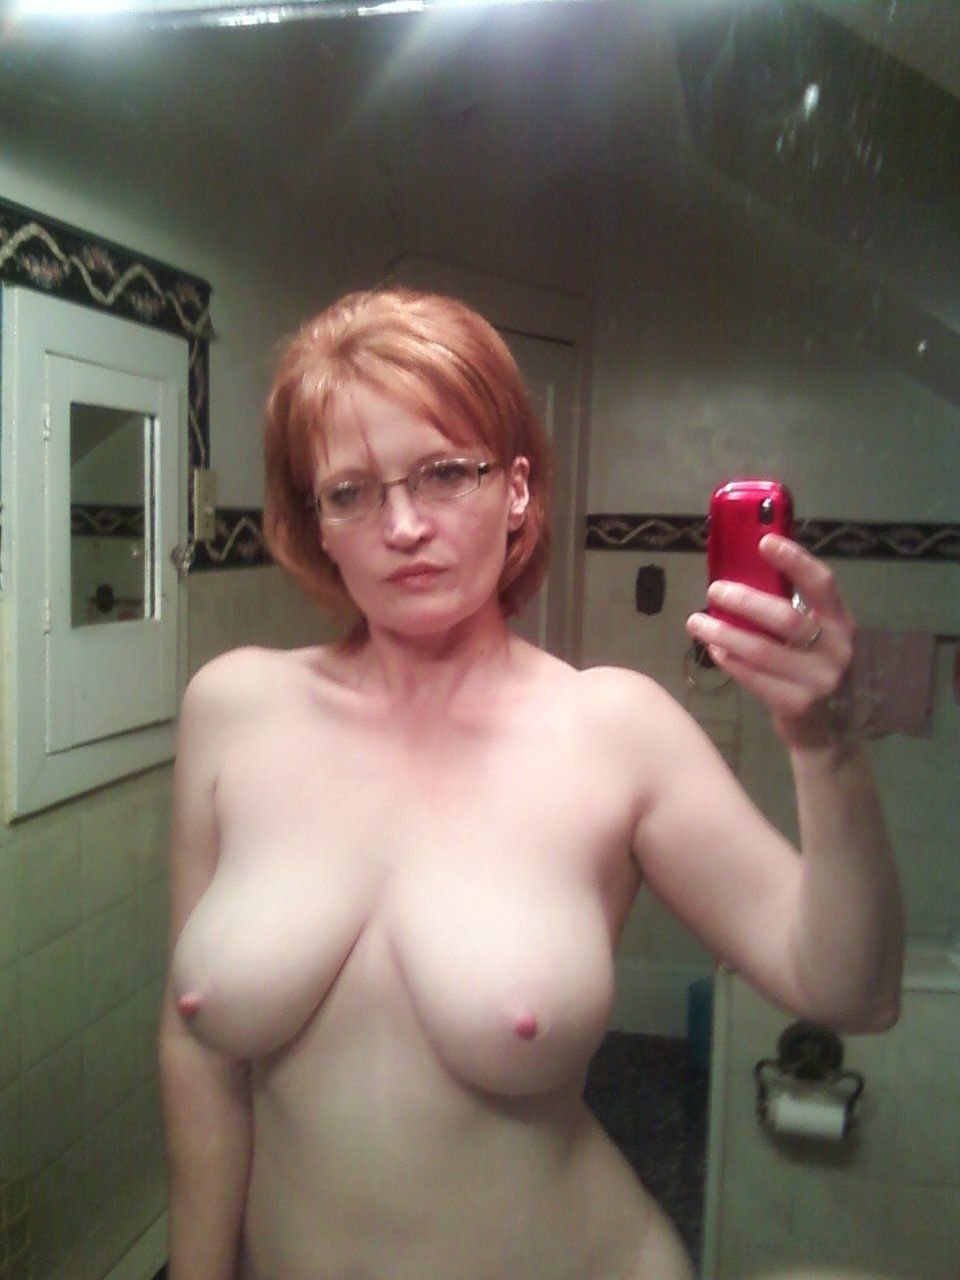 Much the Sexy mature mother naked right!